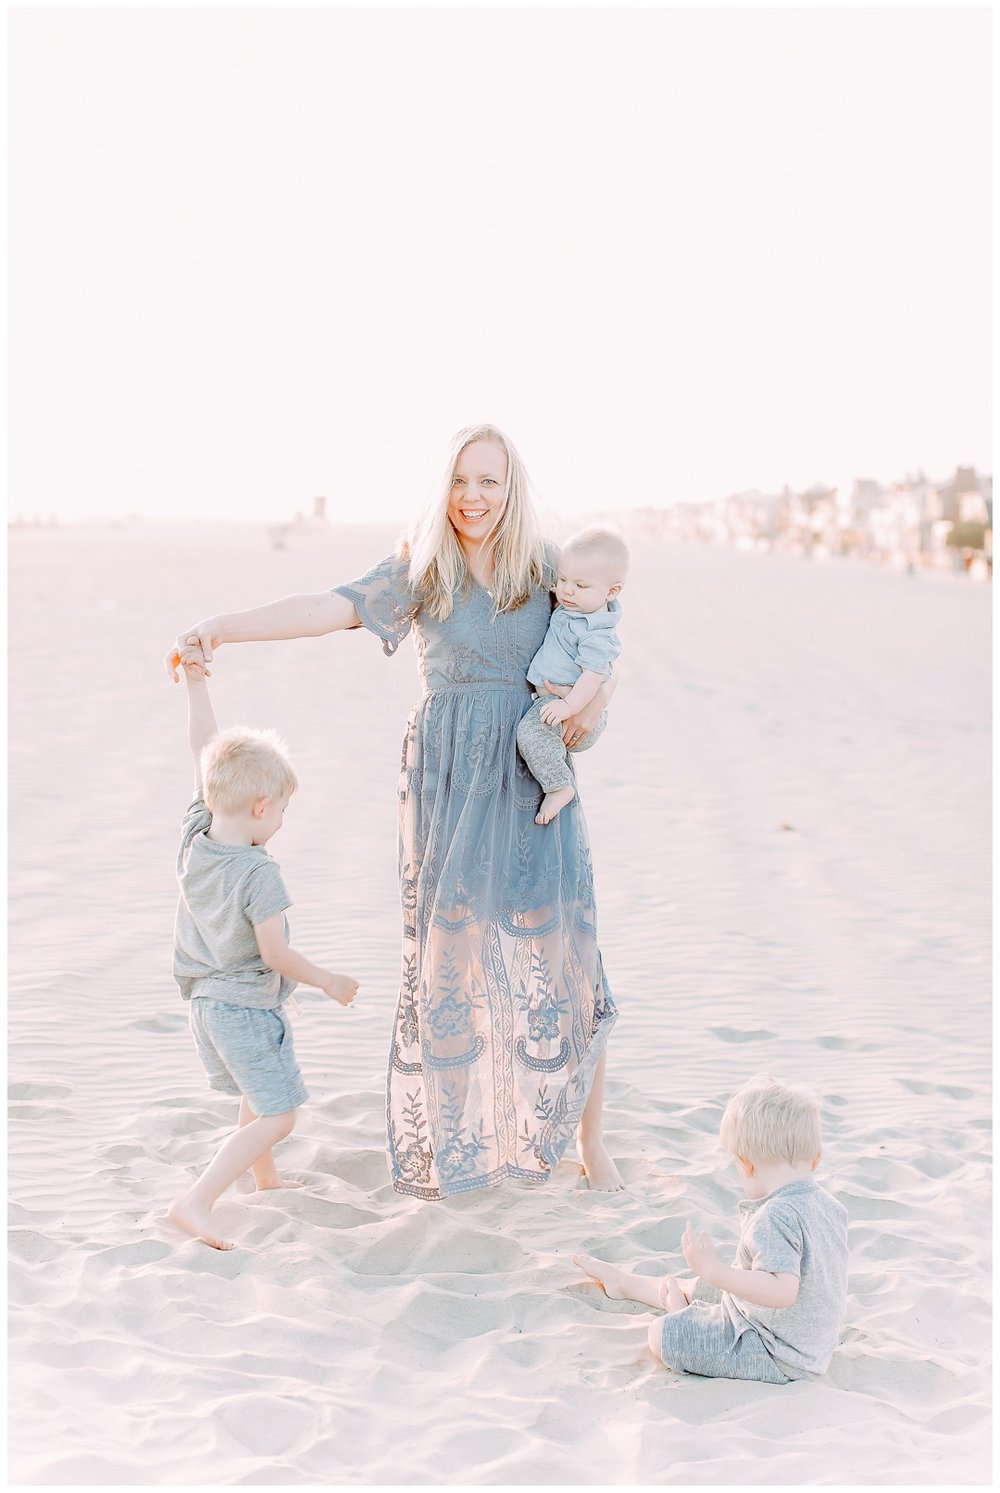 The_Bing_Famiy_Newport_Beach_Family_Photographer_Orange_County_Family_Photography_Cori_Kleckner_Photography_Orange_County_Family_Photographer_Family_Photos_Session__1342.jpg